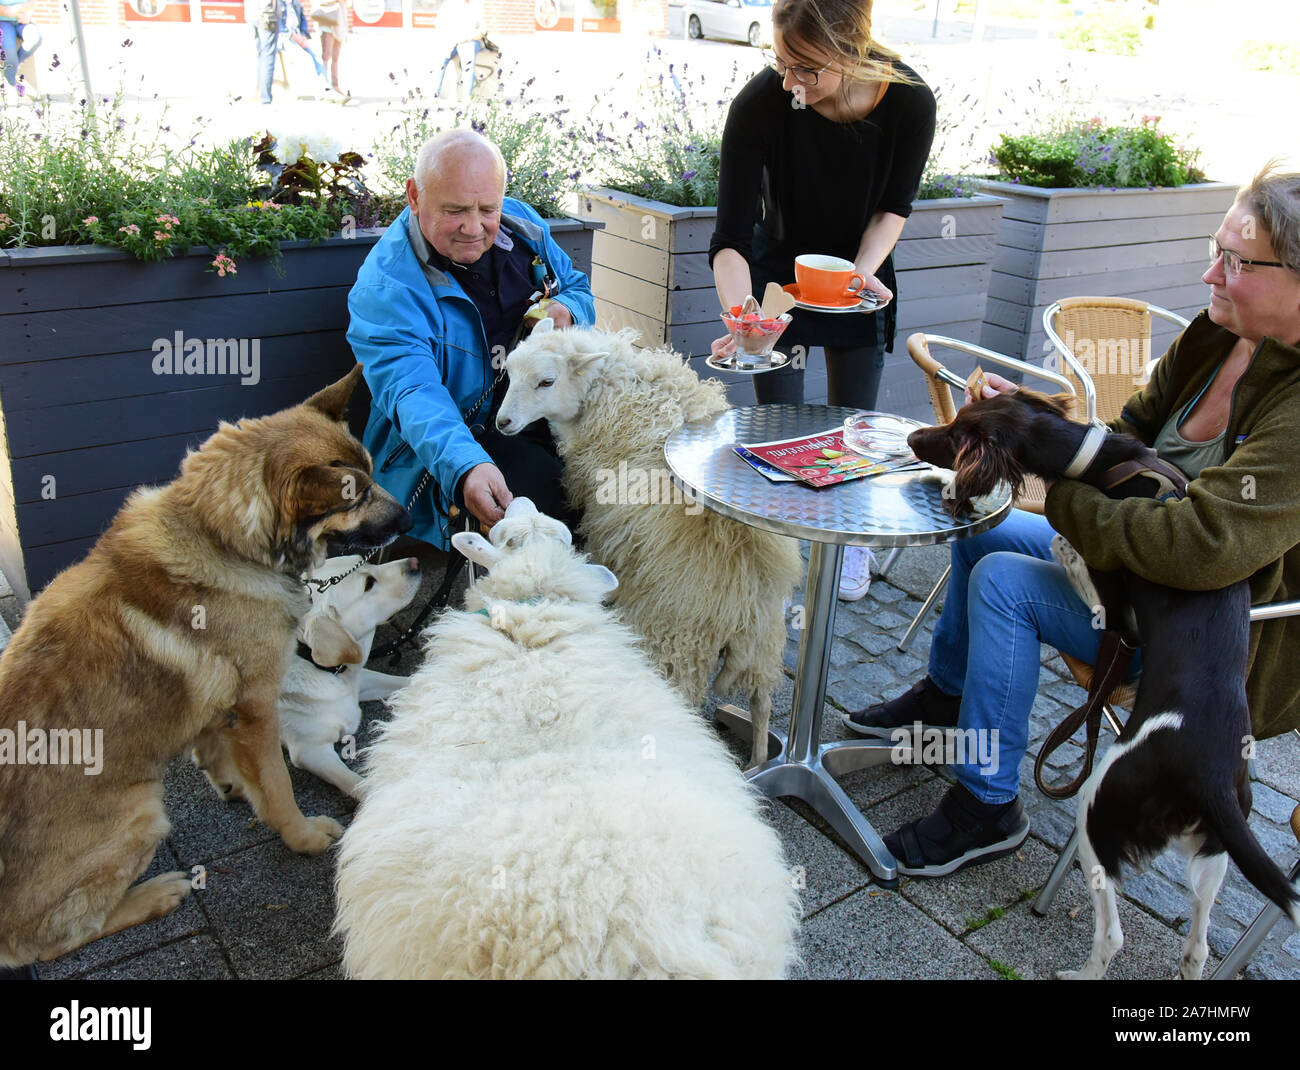 14 October 2019, Saxony, Schkeuditz: Werner Dreßler sits with the dogs Rocky (l), Emmy (2nd from l) and Holly (r) and the sheep Flöckchen (3rd from l) and the lamb Nanni in Jacqueline Rudolph's ice cream parlour. While he and the visitor Birgit Bomberg (r) want to enjoy ice cream and coffee, sheep and dogs wait for the obligatory delicious biscuits. The 79-year-old trained master toolmaker takes the five animals for a walk in the city every day and is an eye-catcher for locals and visitors alike. The sheep flake is the mother of lamb Nanni. Both were raised with the bottle and are accustomed t Stock Photo